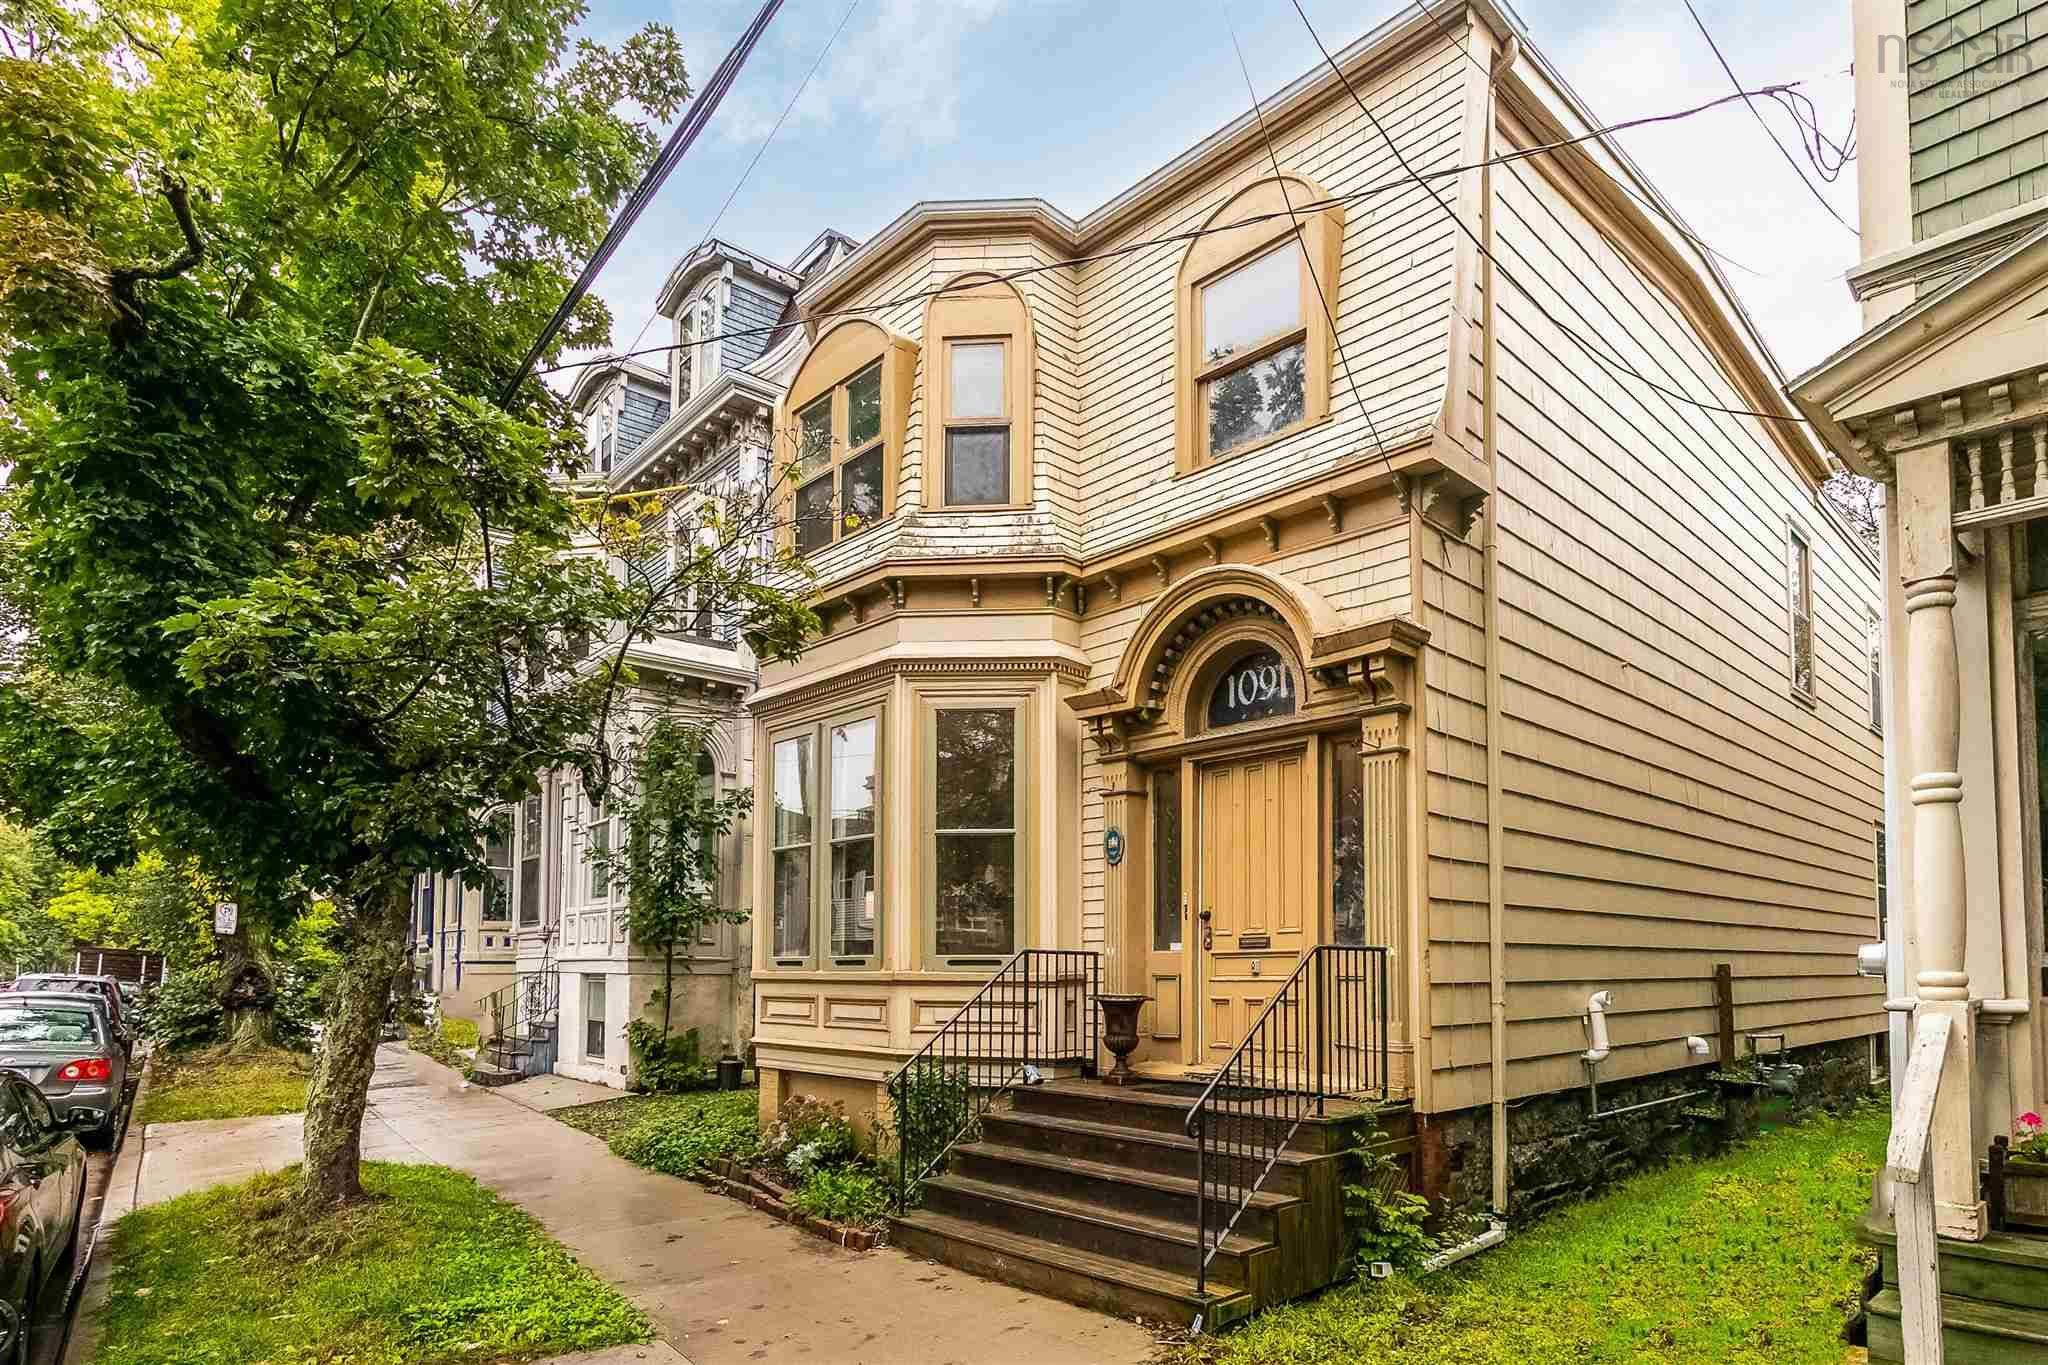 Main Photo: 1091 Tower Road in Halifax: 2-Halifax South Residential for sale (Halifax-Dartmouth)  : MLS®# 202123634